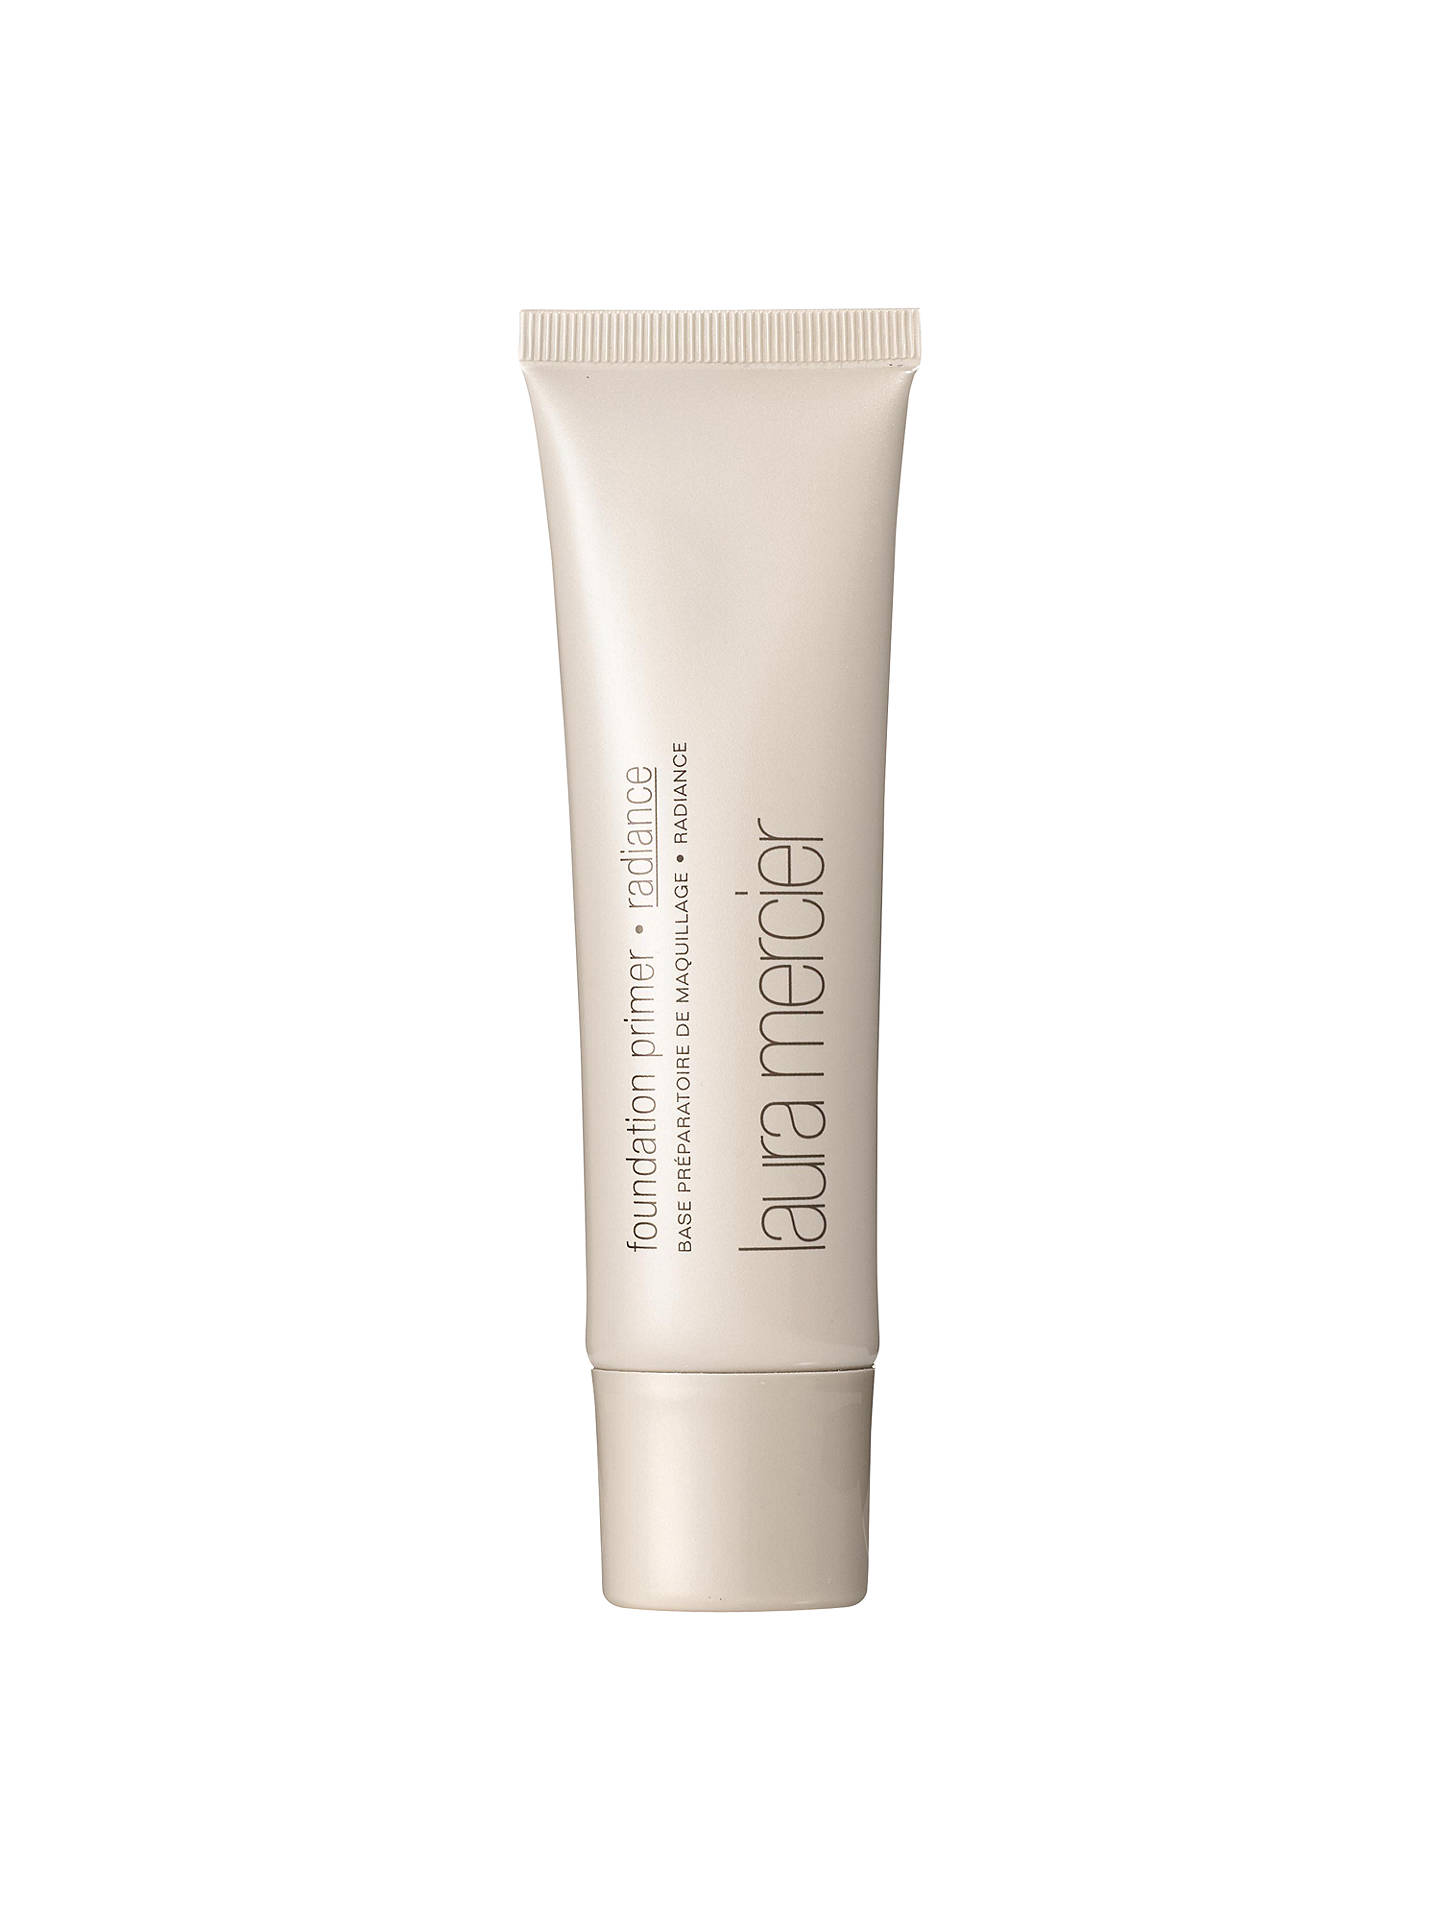 BuyLaura Mercier Foundation Primer - Radiance, 50ml Online at johnlewis.com